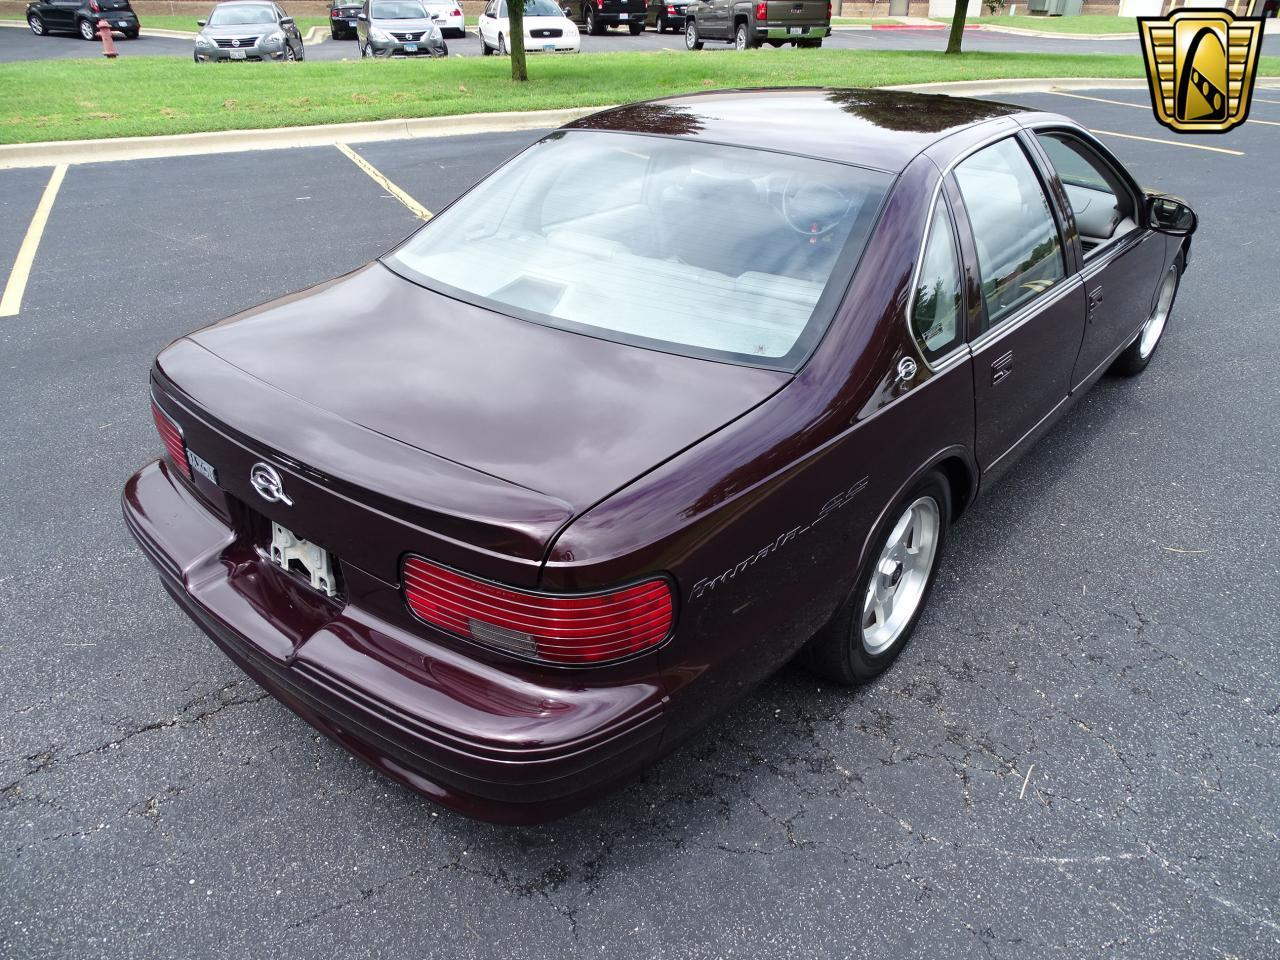 Large Picture of '96 Impala located in O'Fallon Illinois - $19,000.00 Offered by Gateway Classic Cars - St. Louis - QB5K